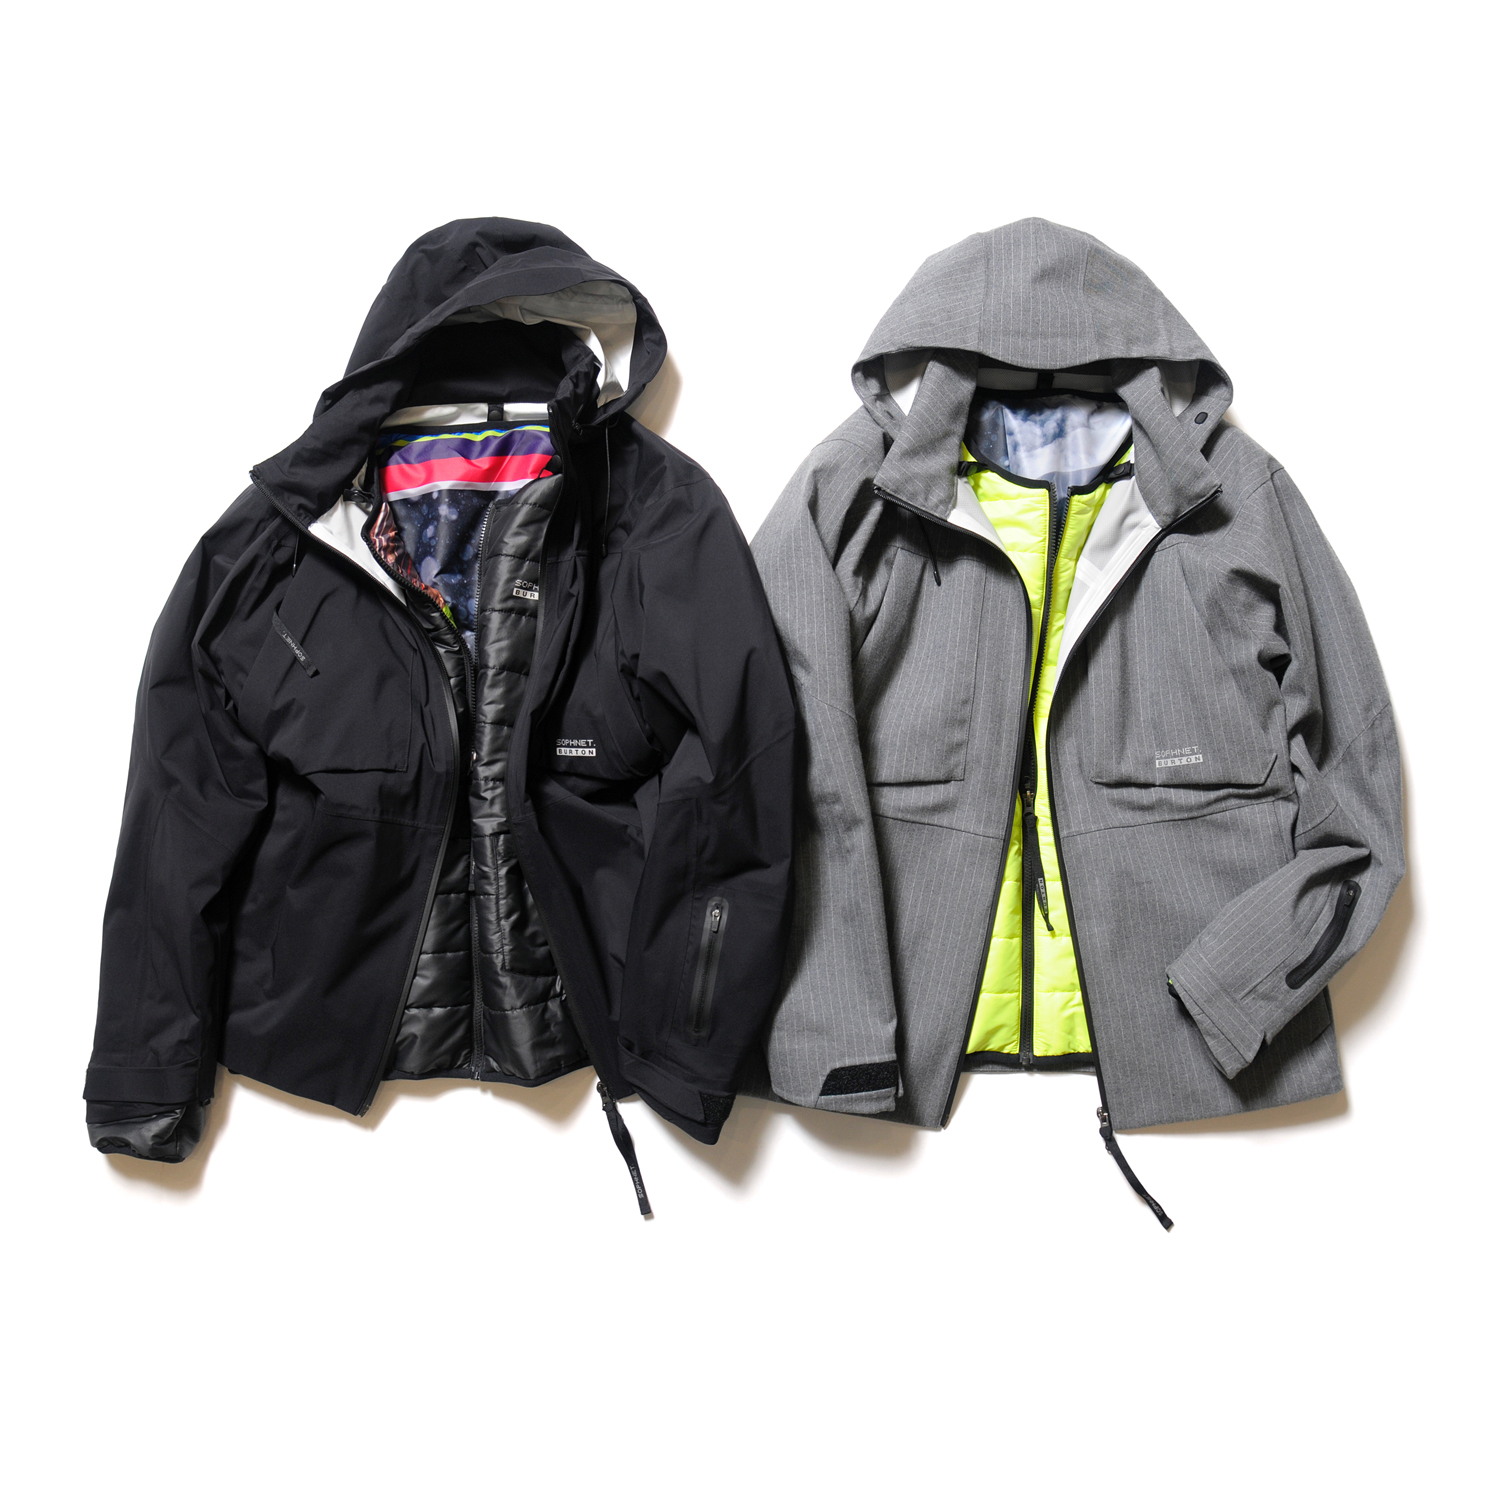 <2.5 LAYER SYSTEM MOUNTAIN PARKA> color : BLACK , GRAY  size : S , M , L , XL  price : 76,000 + TAX (BLACK) , 86,000 + TAX(GRAY)